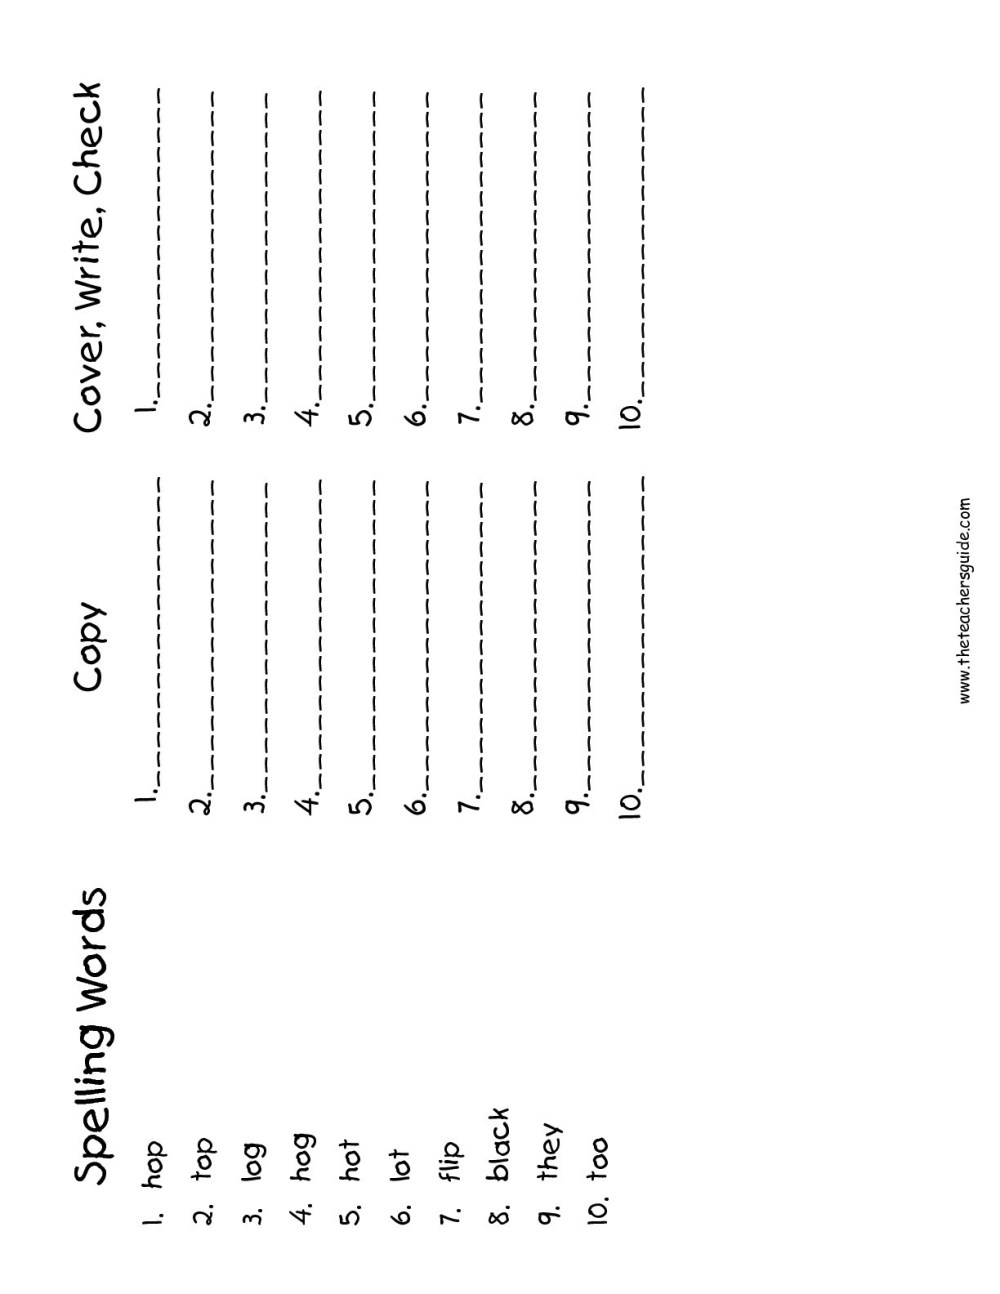 medium resolution of 5 Spelling Worksheets First Grade 1 Spelling Words -  apocalomegaproductions.com